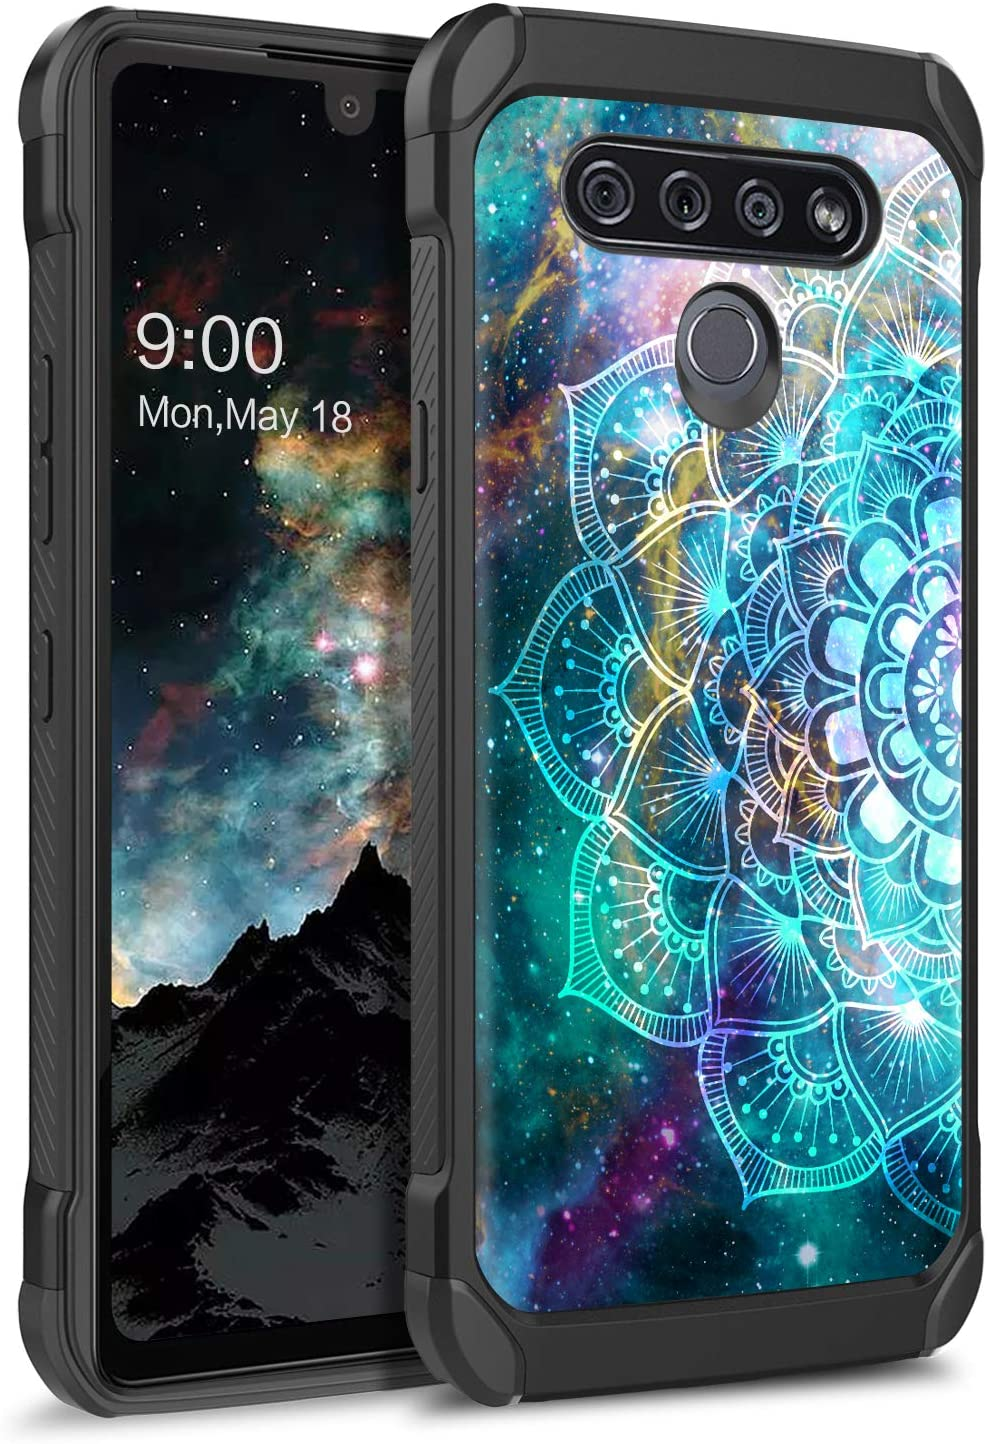 BENTOBEN LG K51 Case, LG Reflect Case, LG Q51 Case, Shockproof Glow in The Dark Luminous 2 in 1 Hybrid Hard PC Soft TPU Bumper Non-Slip Protective Phone Cases for LG K51 / LG Q51, Mandala in Galaxy